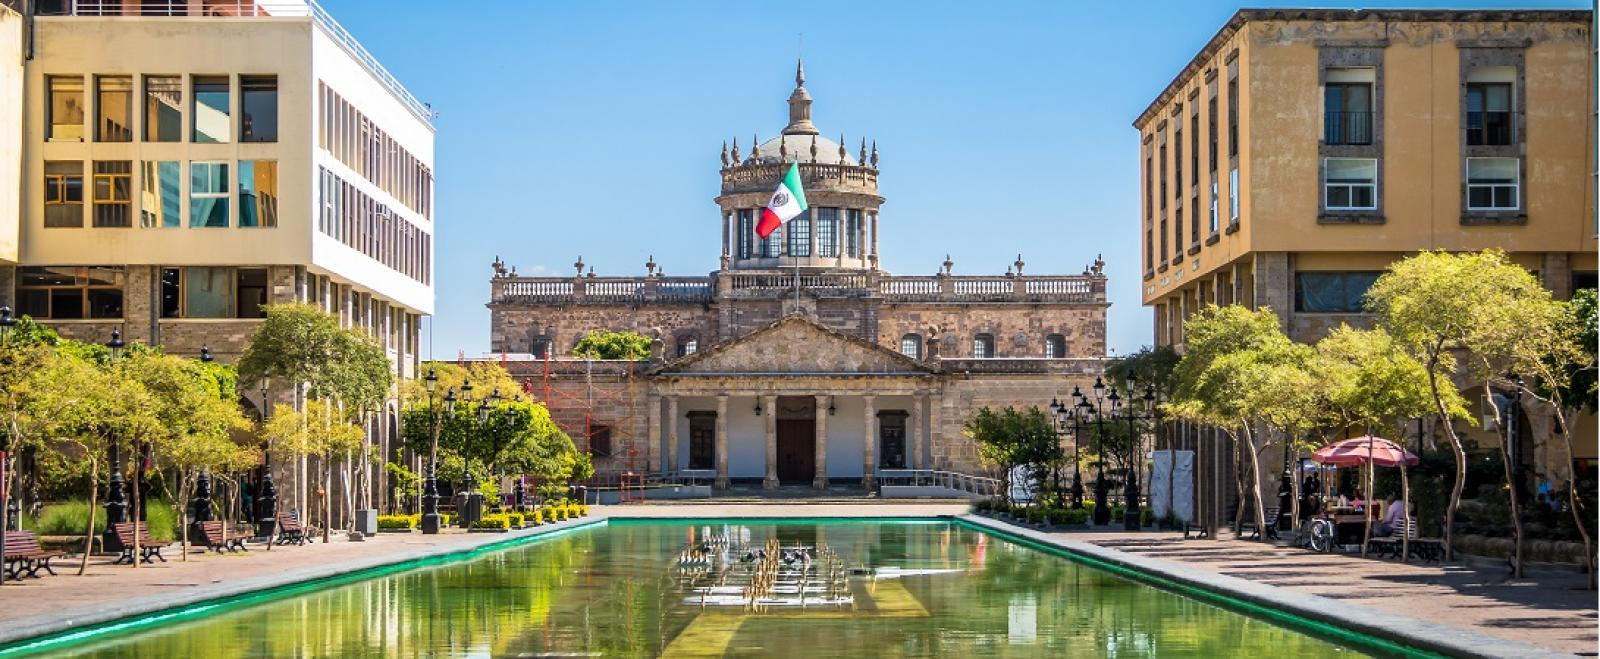 The Hospicio Cabañas, a World Heritage Site, found in Guadalajara, Mexico.